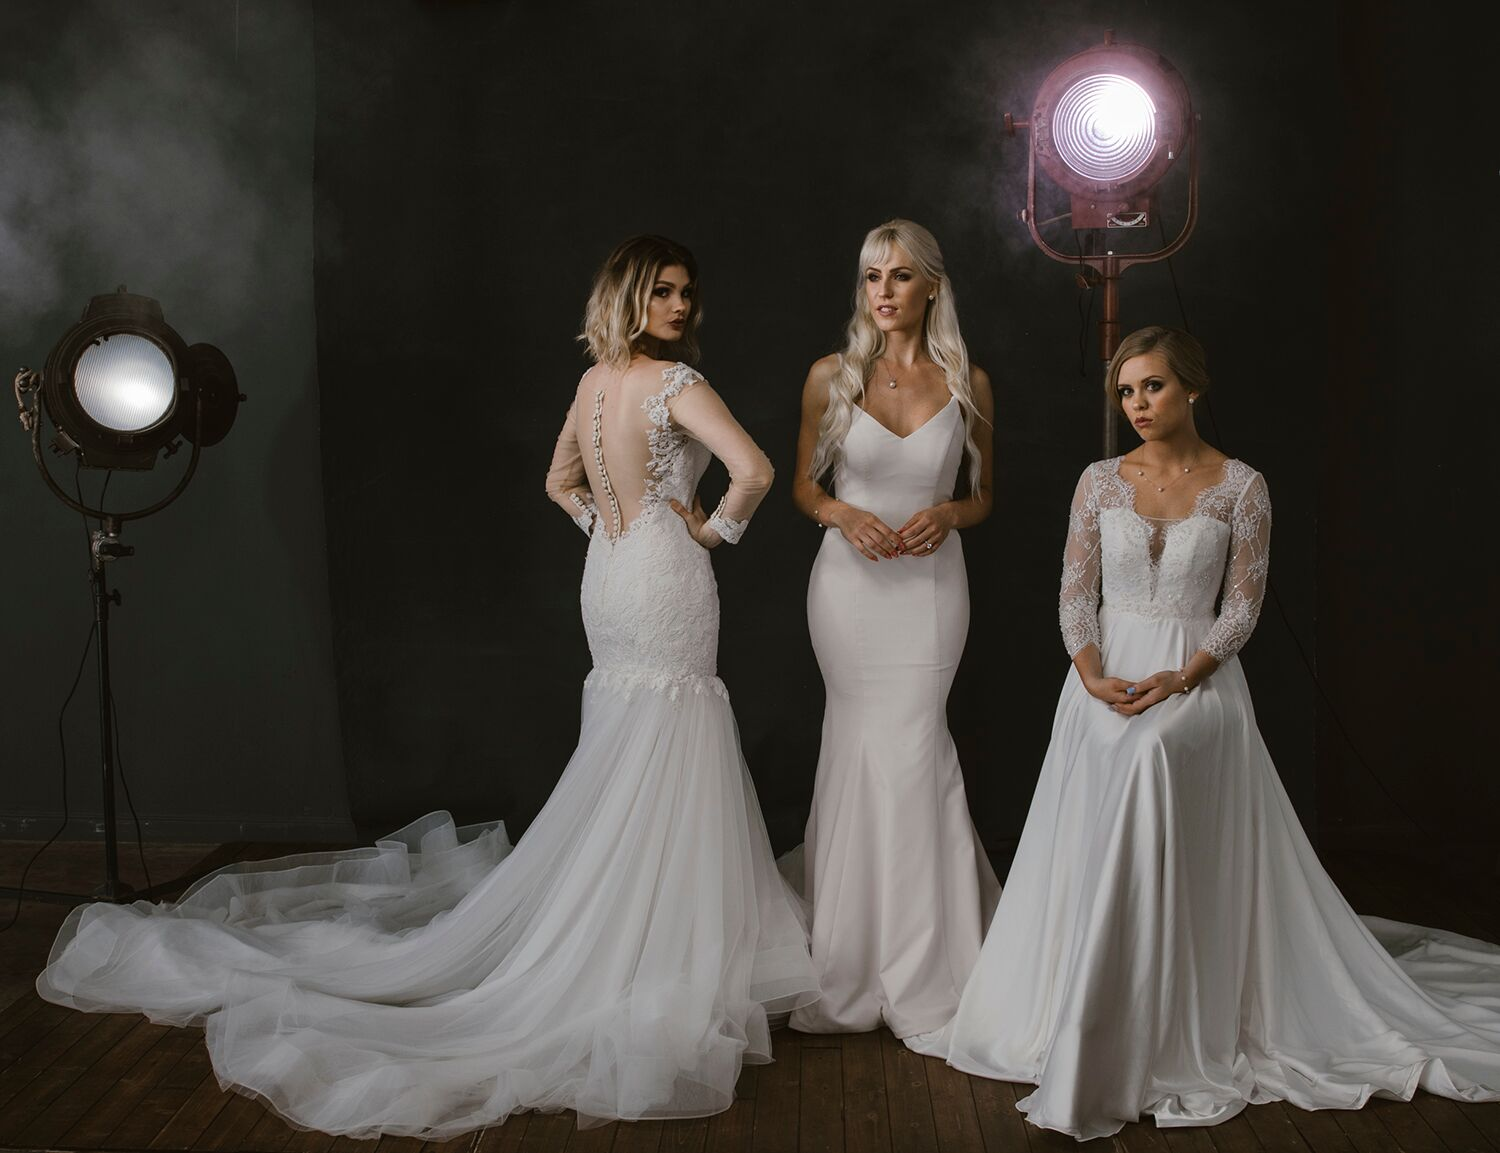 Bridal Salons in Nashville, TN - The Knot